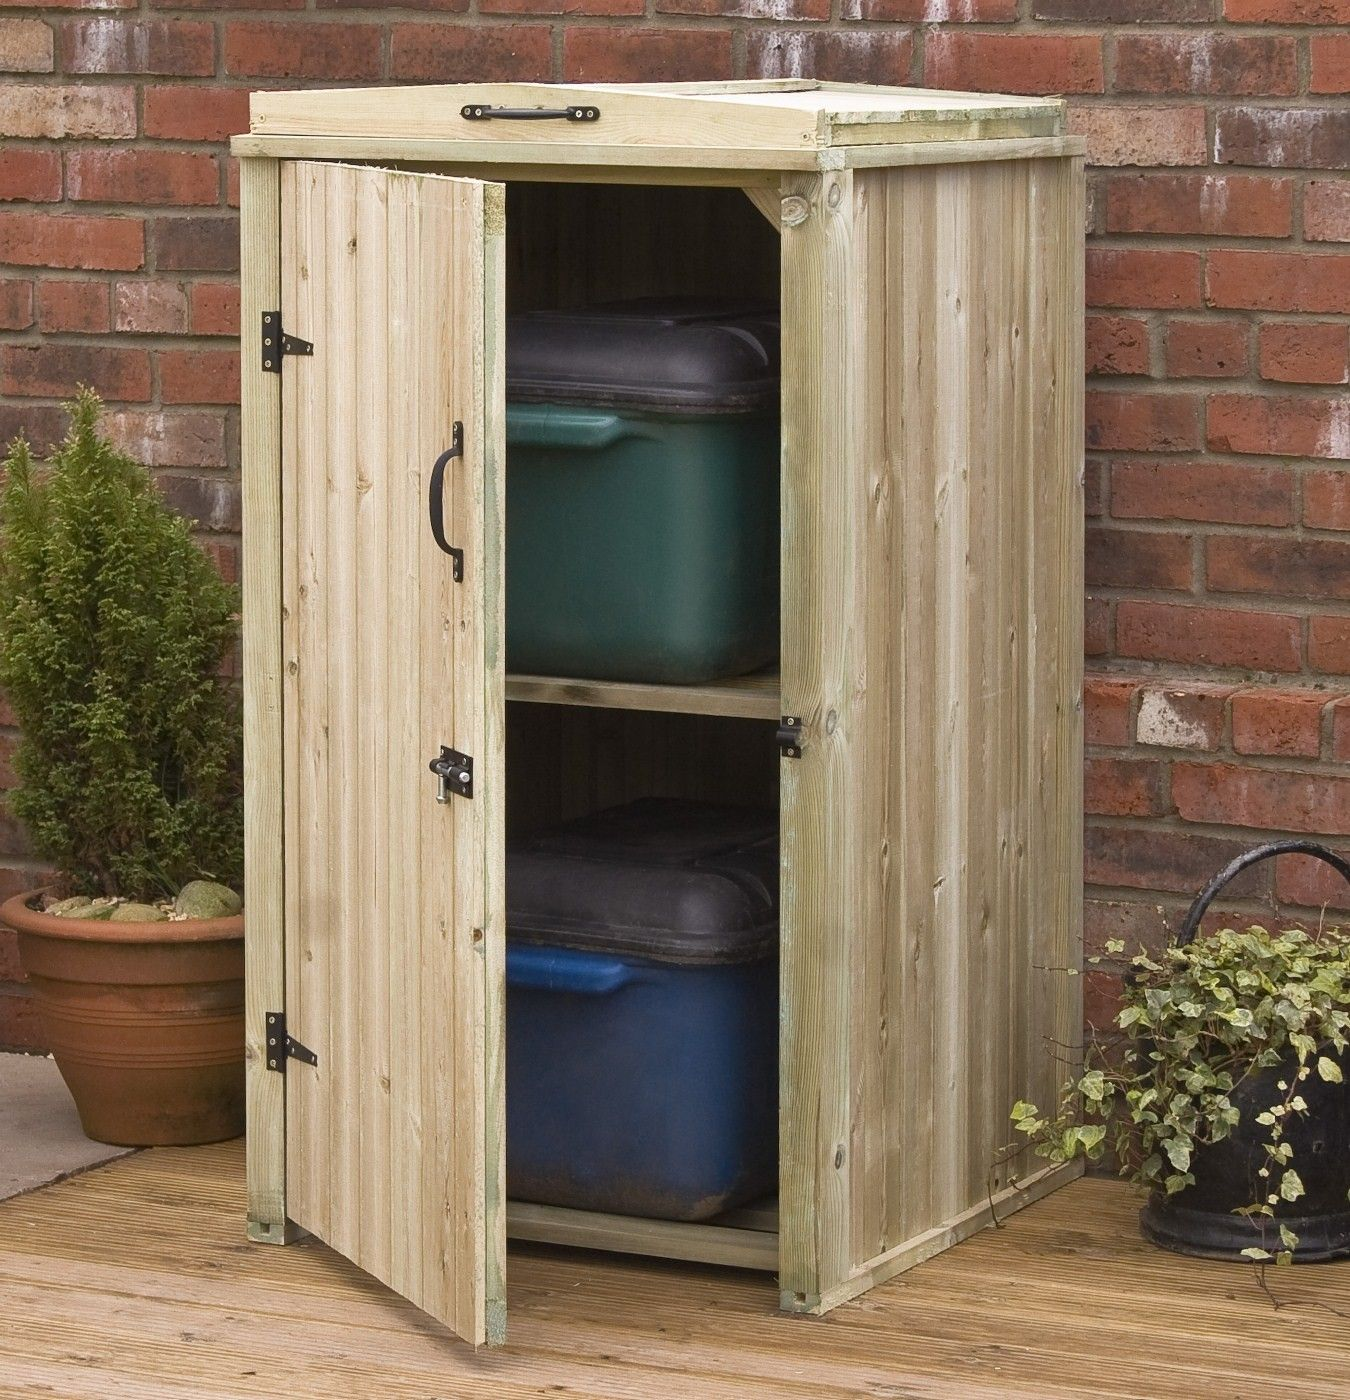 Outdoor Wood Storage Cabinet & Outdoor Wood Storage Cabinet | foamy in 2019 | Wood storage cabinets ...